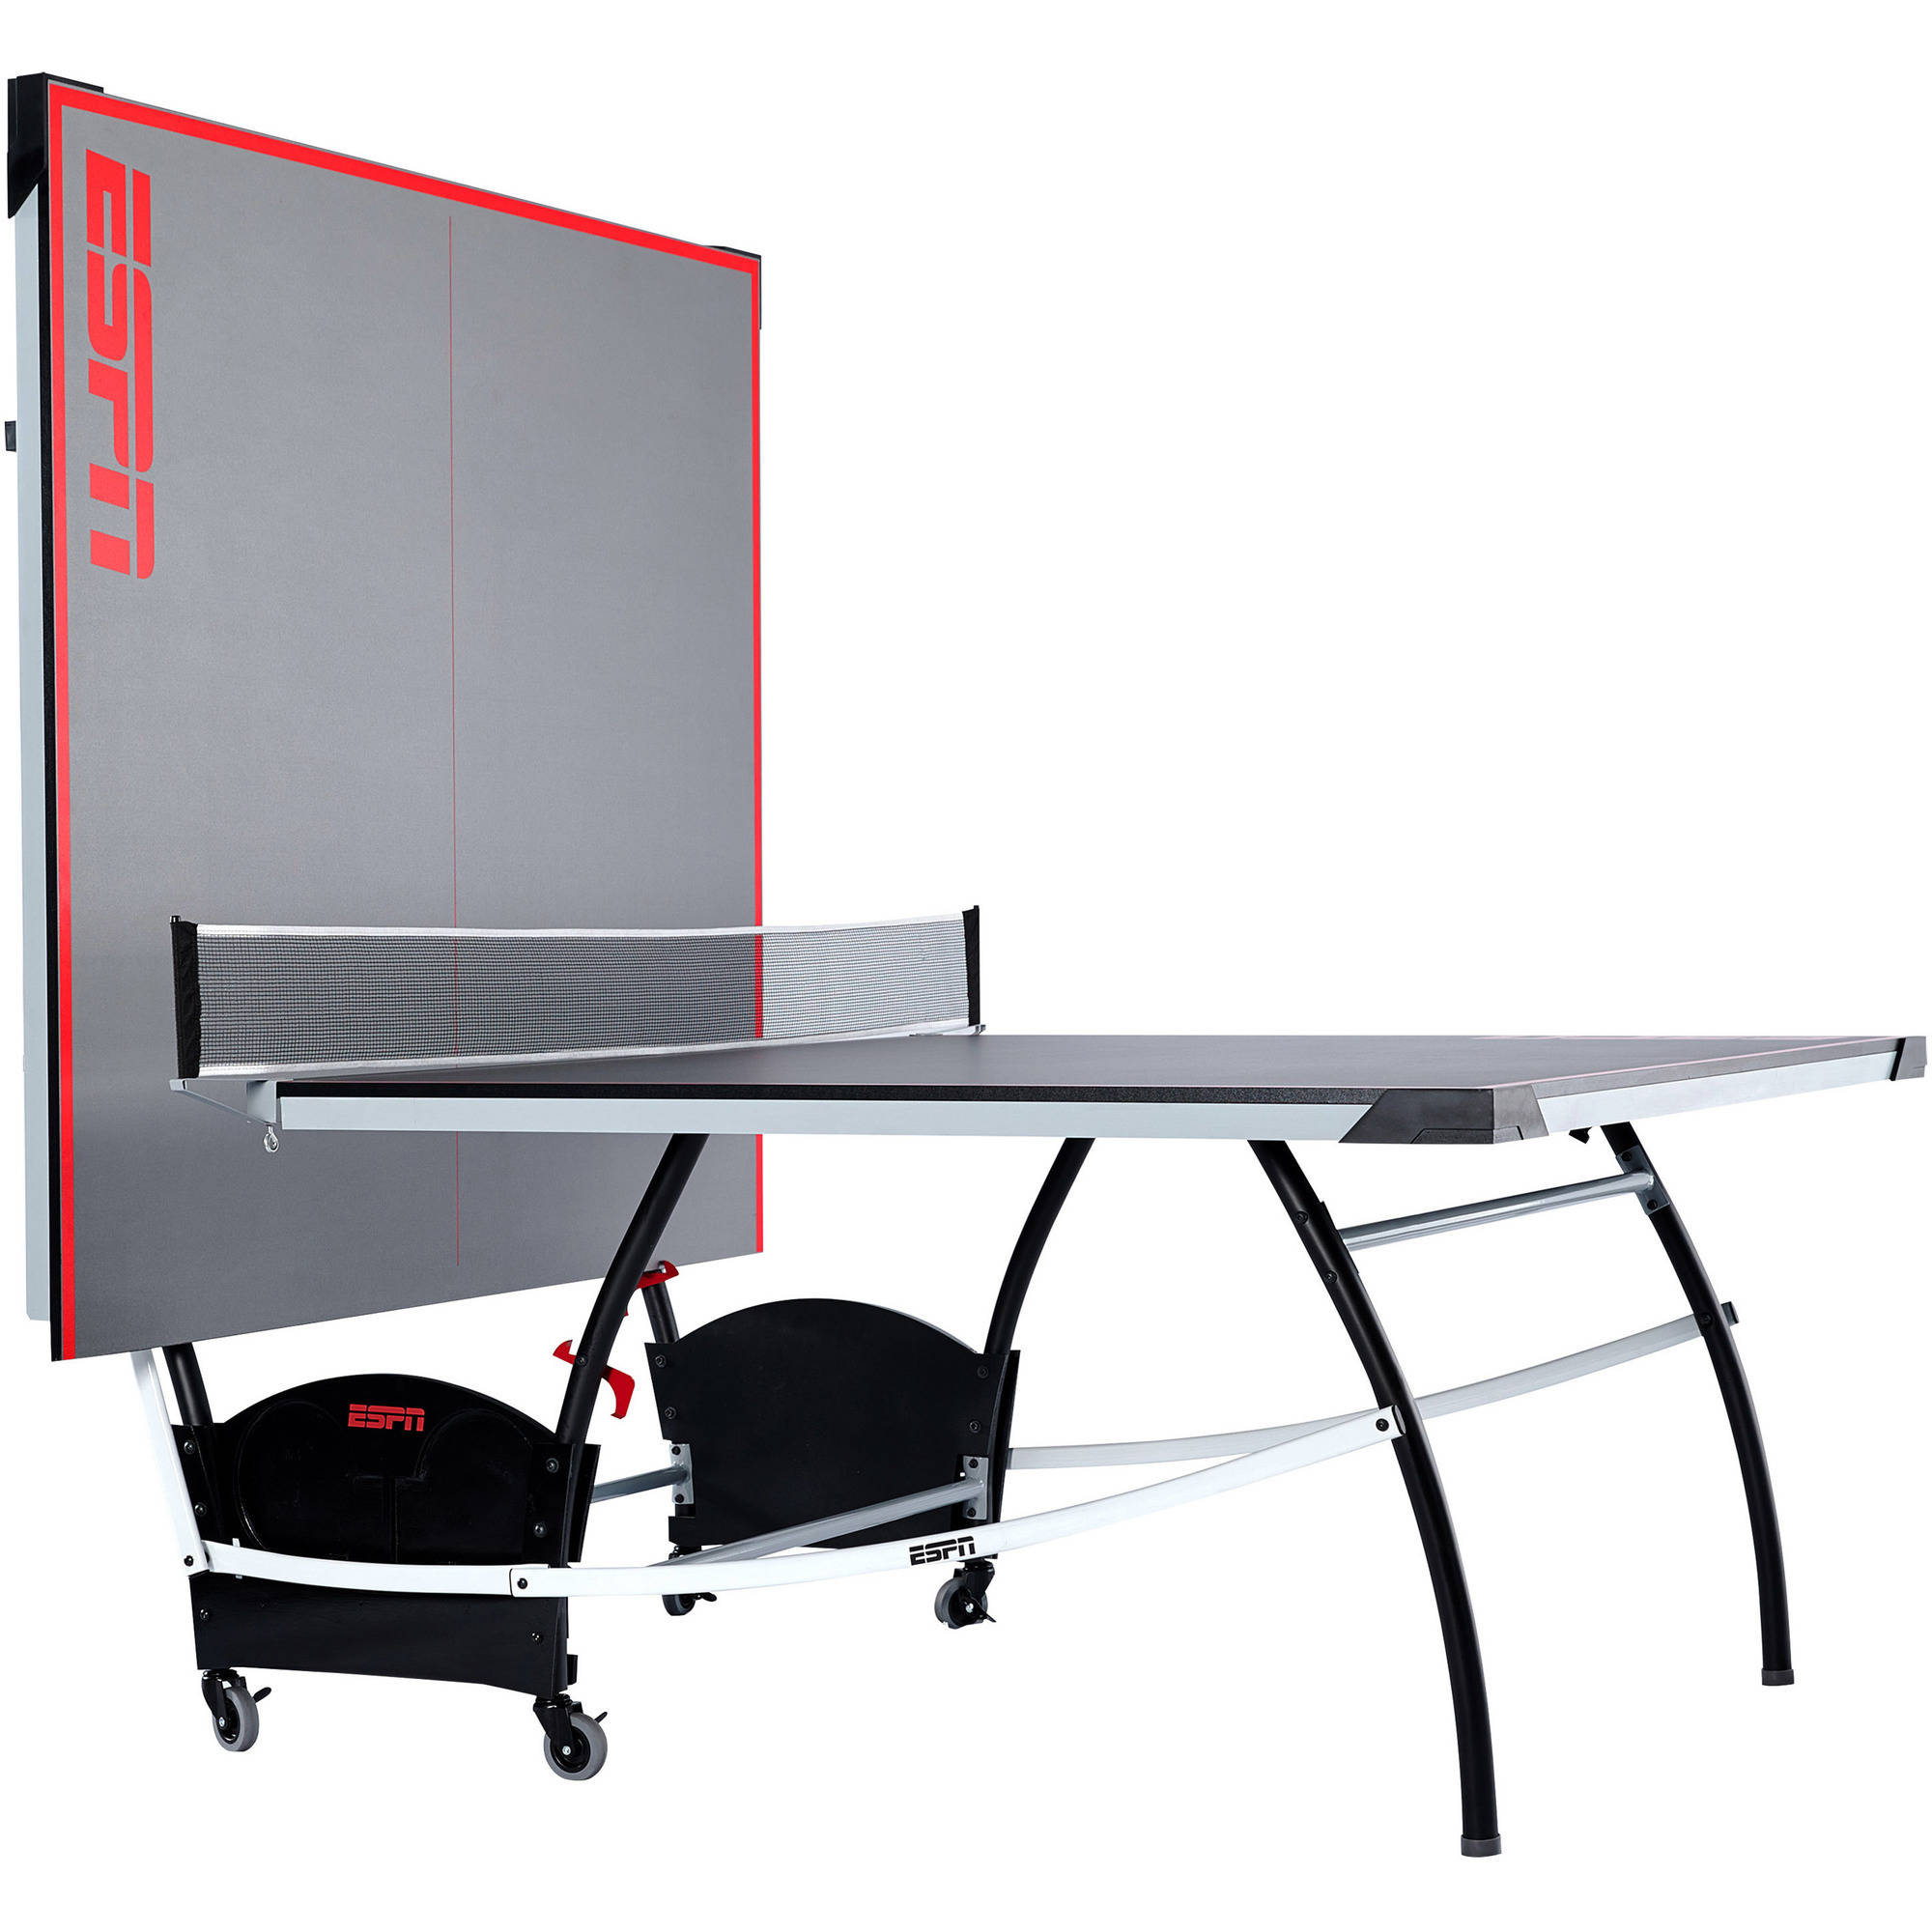 ESPN Official Size Table Tennis Table with Built-in Accessory Storage Space, Includes Set of Post and Net, Sturdy Steel Leg Construction